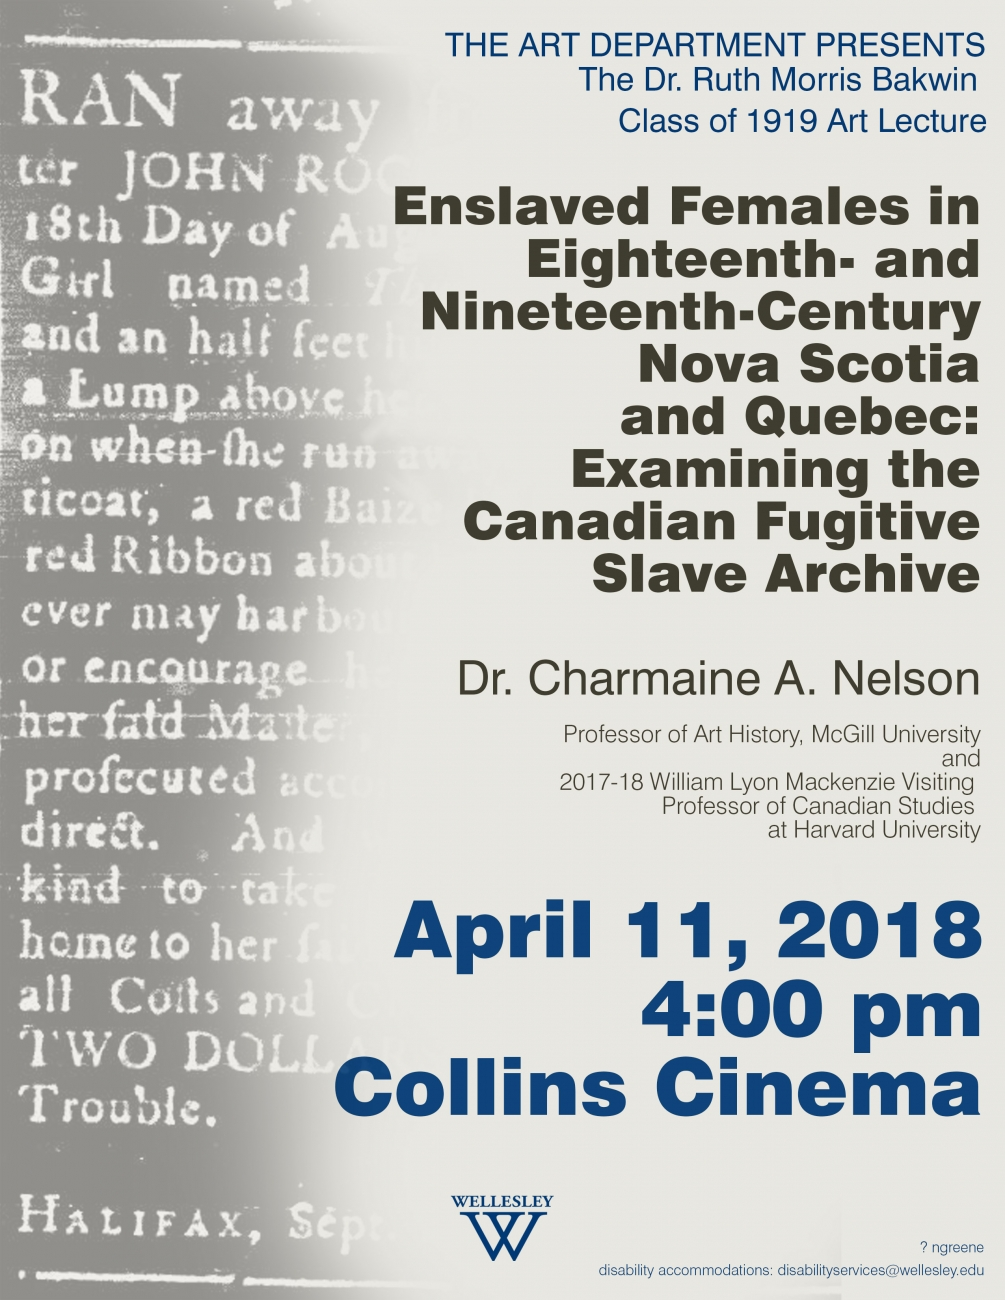 Bakwin lecture poster with grayed out old style text on left